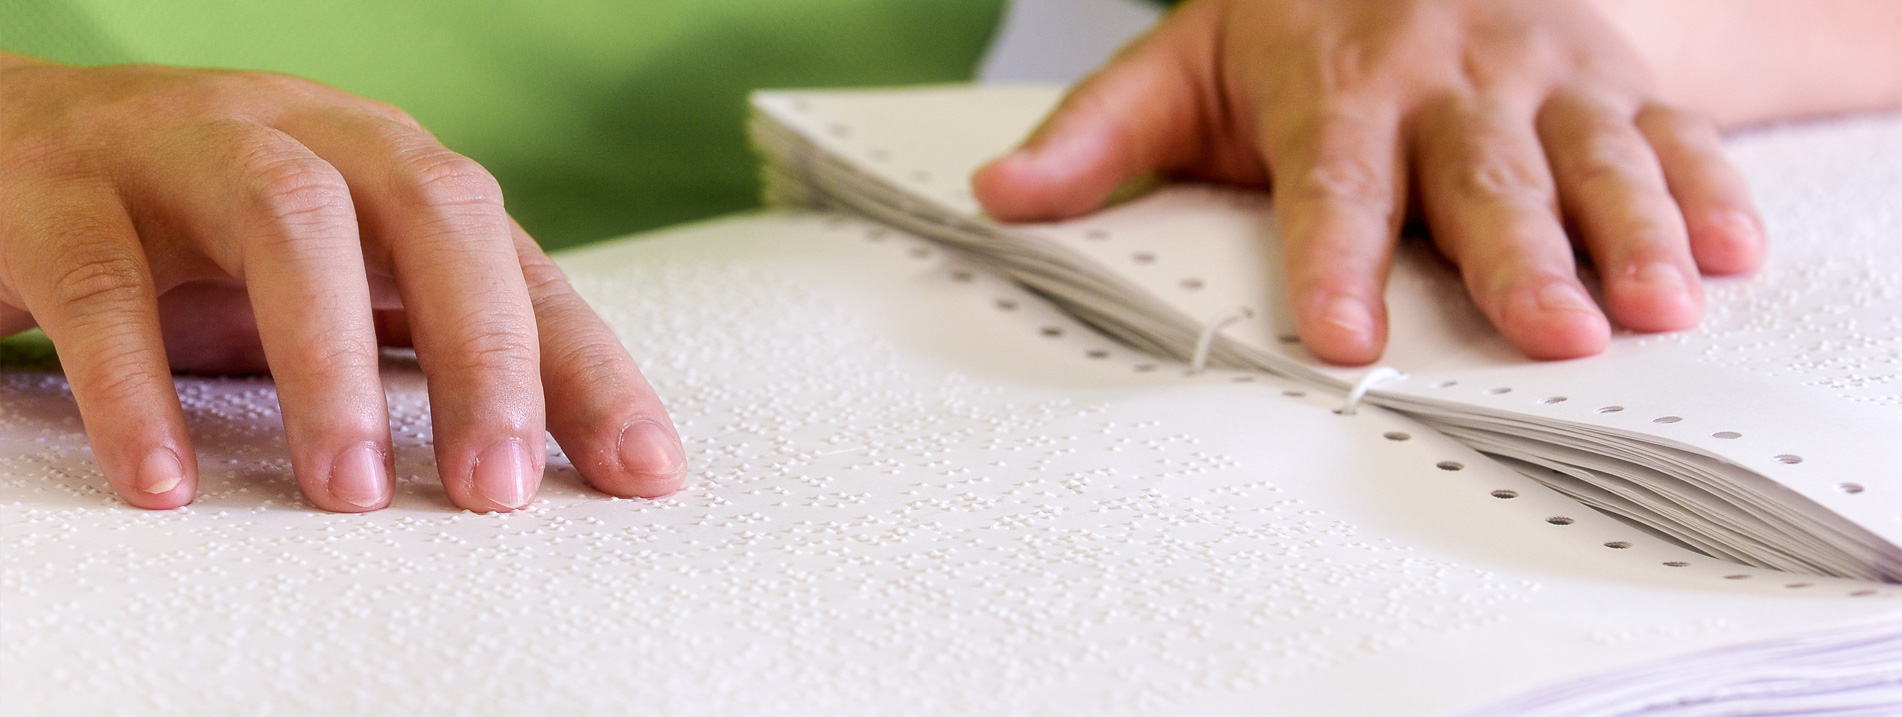 A hand touching braille